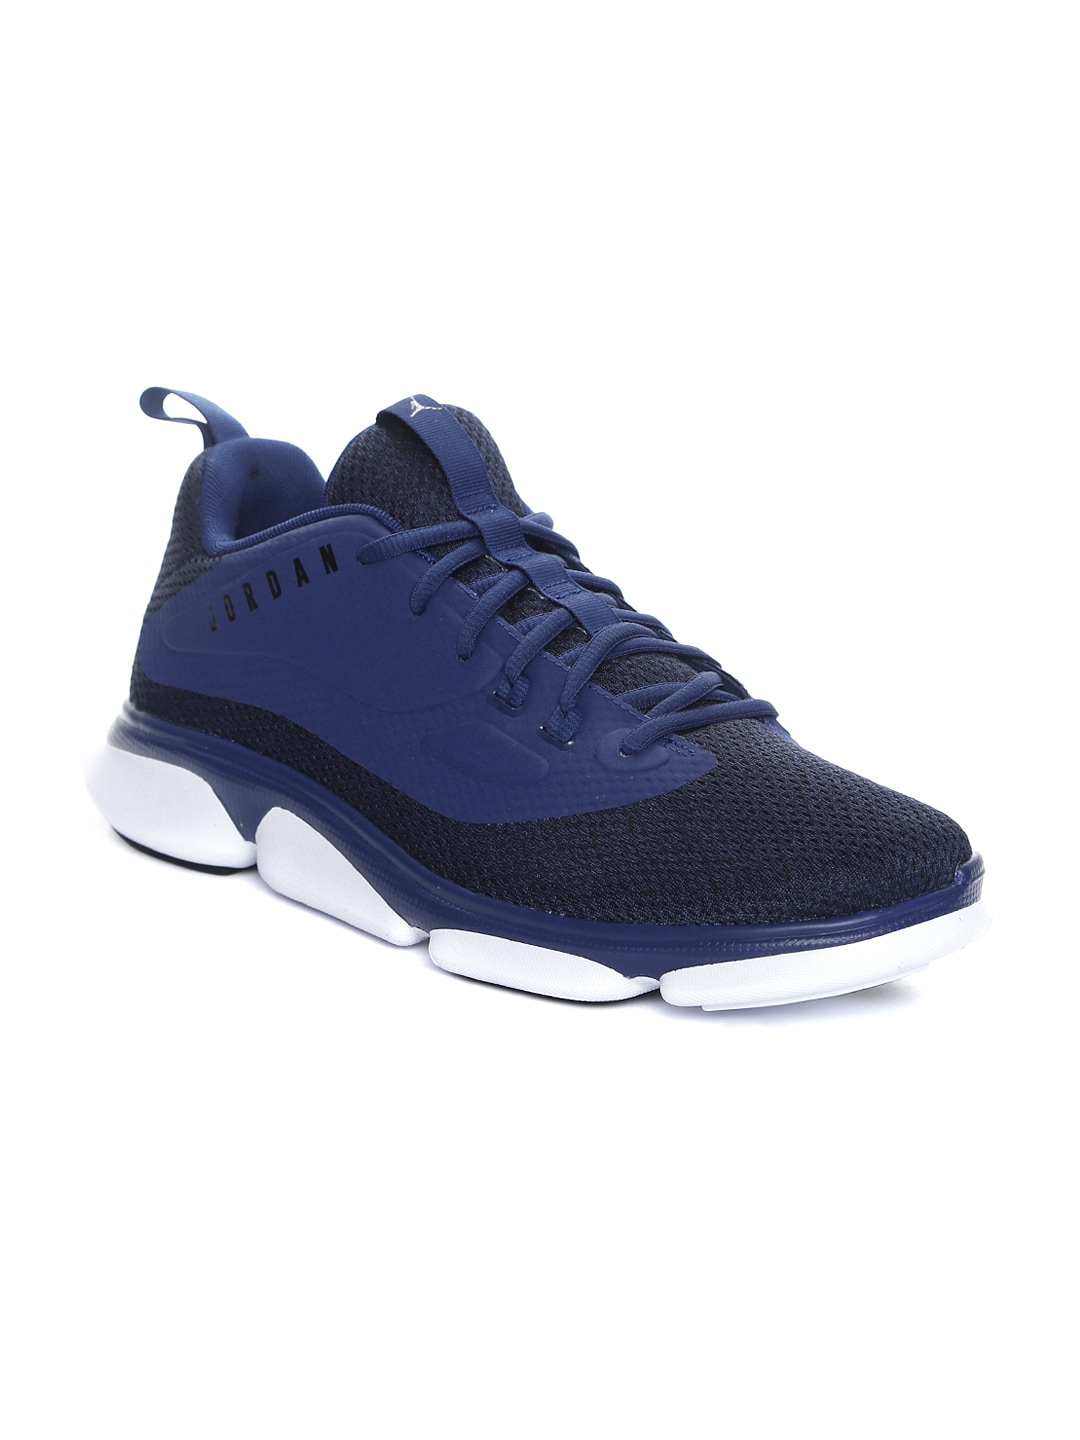 newest 6d3b7 a5ee1 Nike 854289-406 Men Purple Jordan Impact Tr Basketball Shoes - Best Price  in India   priceiq.in